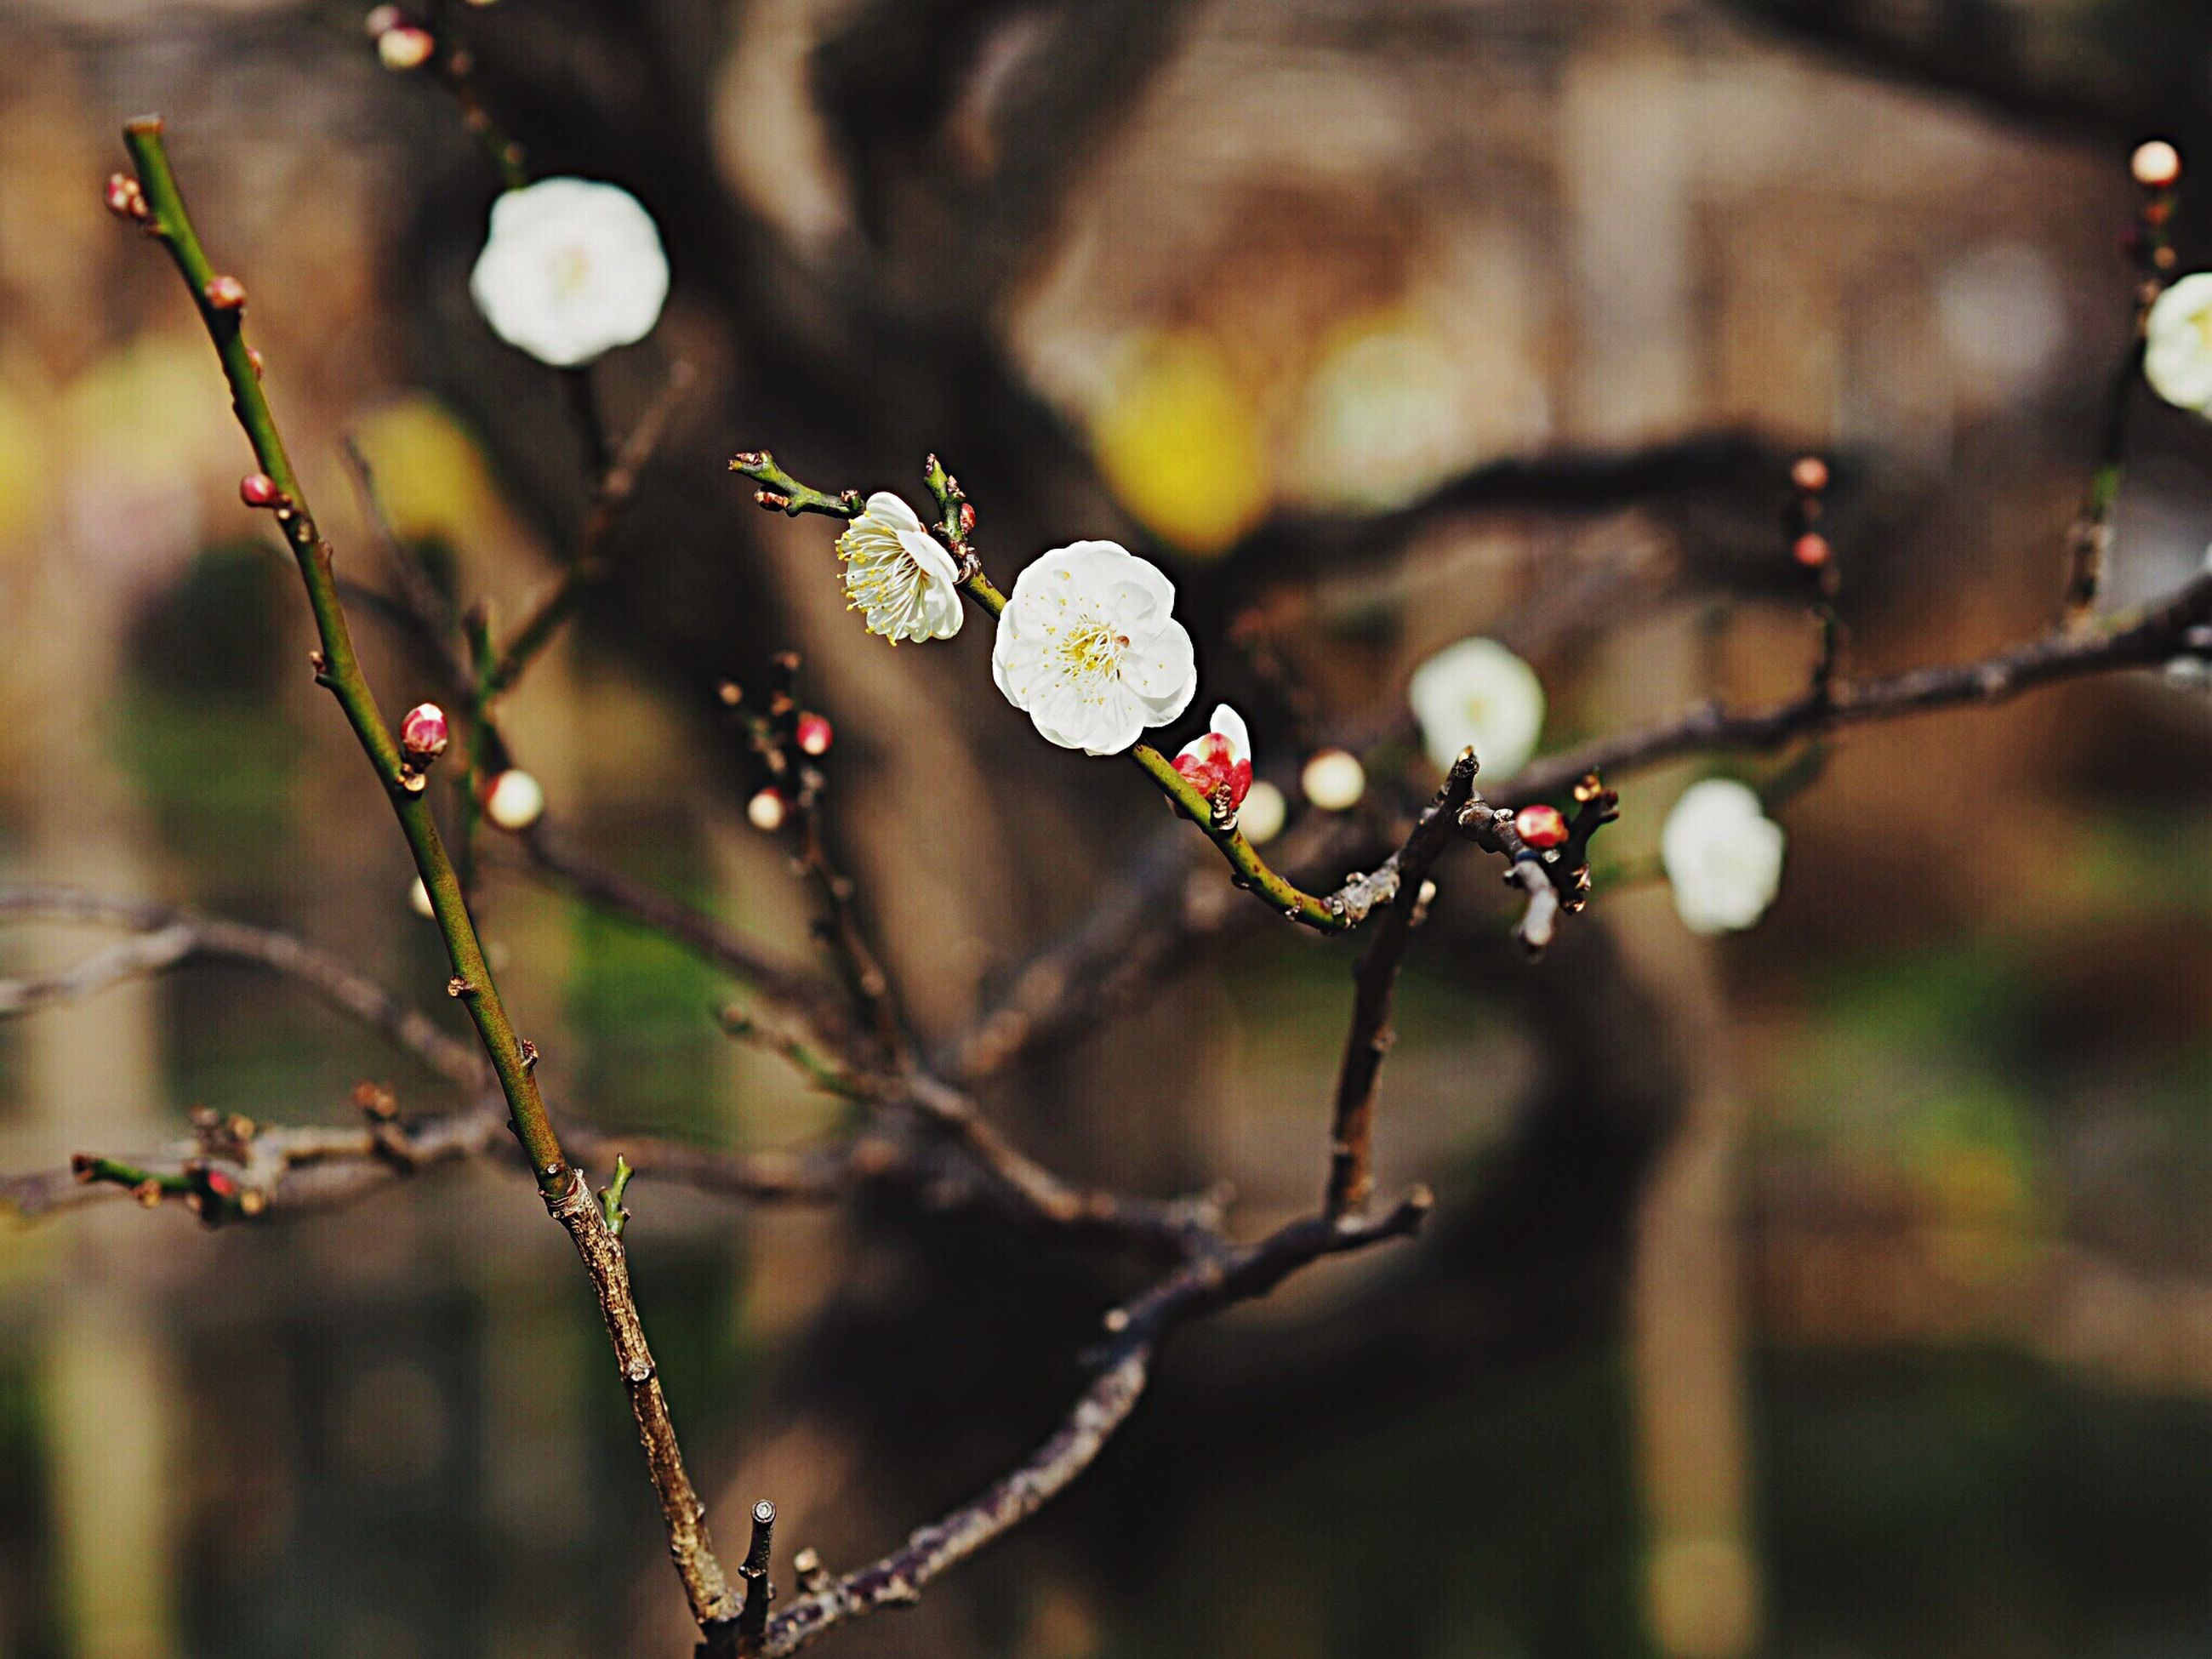 growth, nature, beauty in nature, plant, close-up, freshness, focus on foreground, outdoors, no people, flower, twig, fragility, tree, branch, day, flower head